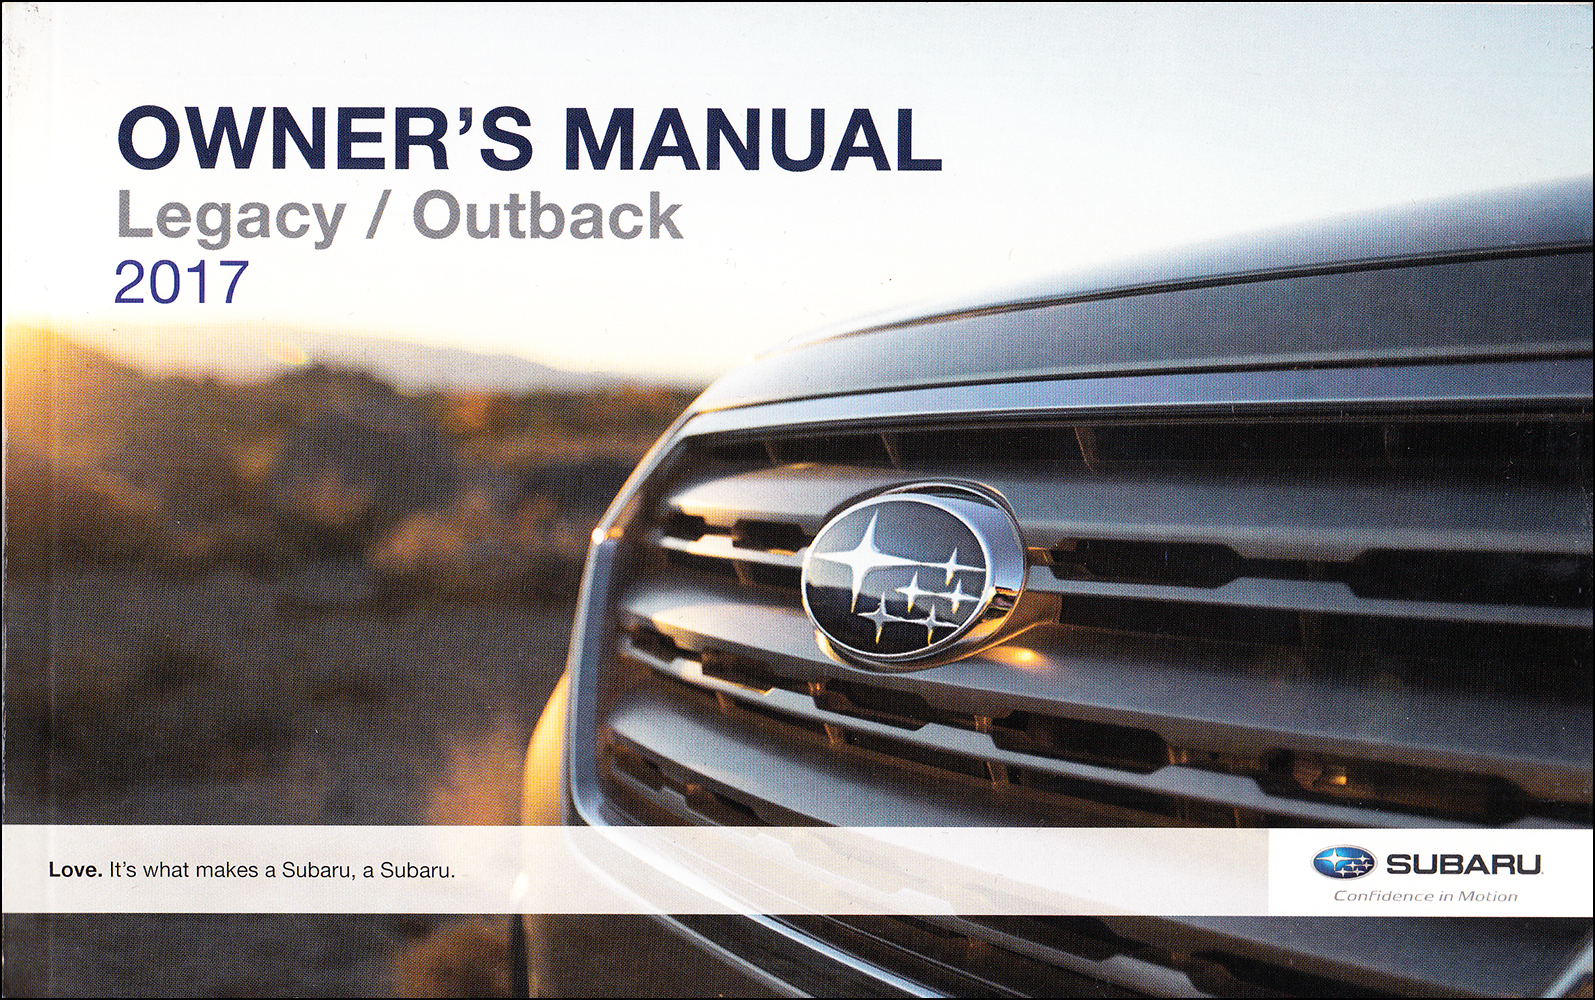 2017 Subaru Legacy and Outback Owner's Manual Original